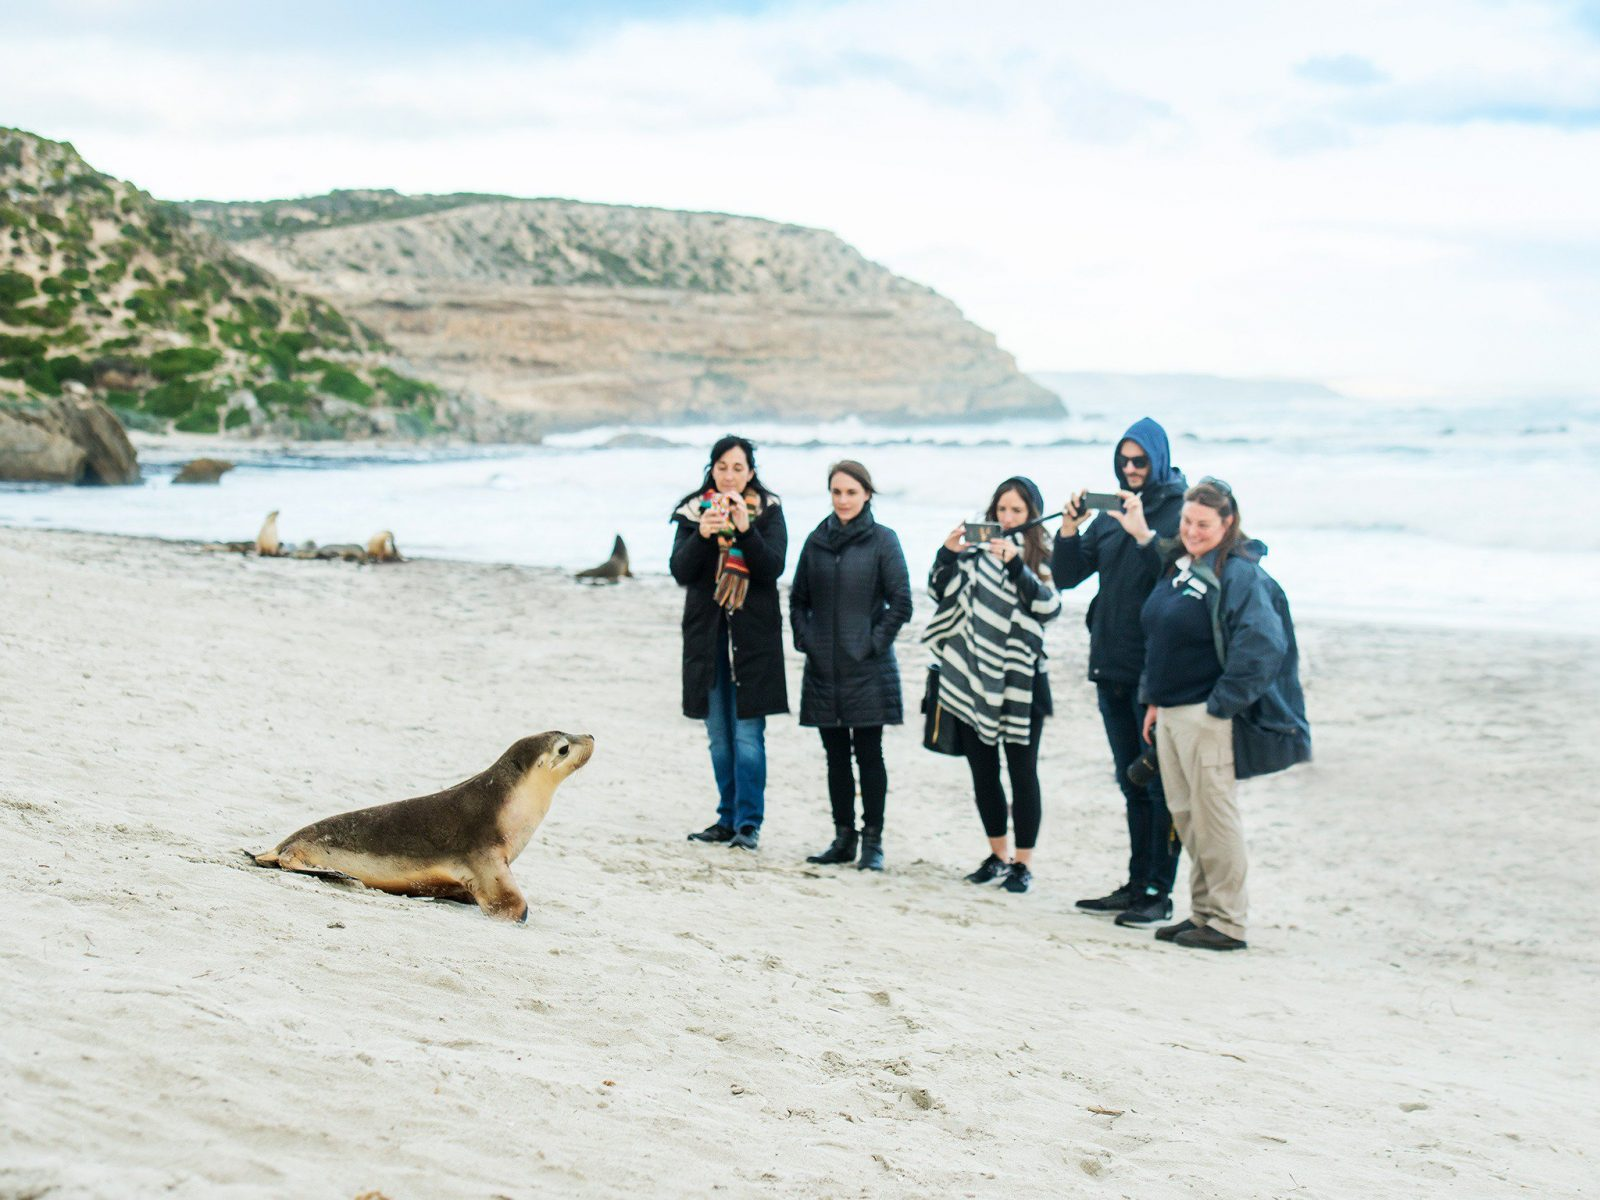 Seal Bay Conservation Park